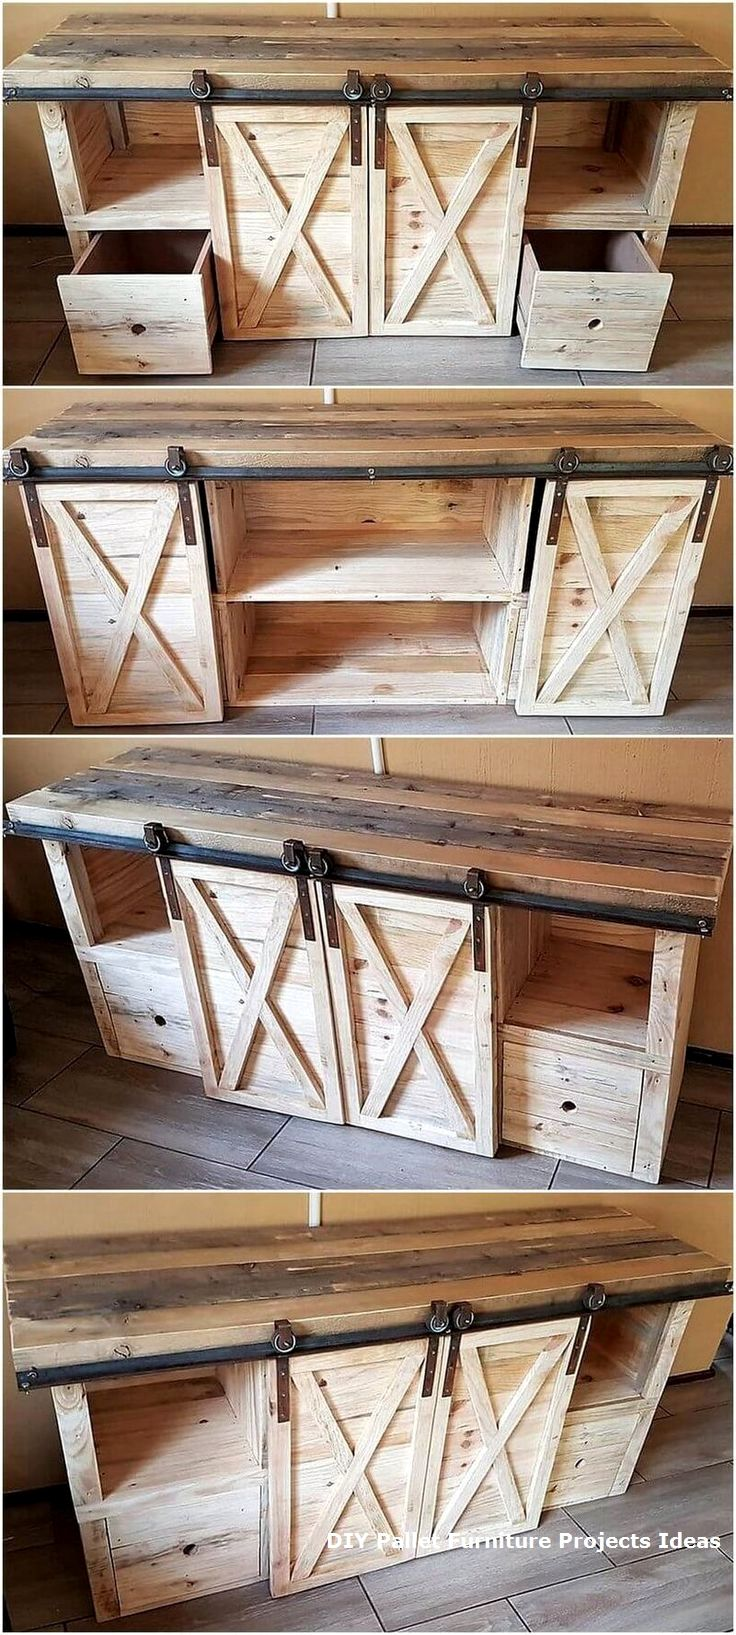 Rustic Pallet Wood Ideas And Projects Diy Pallet Furniture Rustic Furniture Diy Rustic Furniture Design